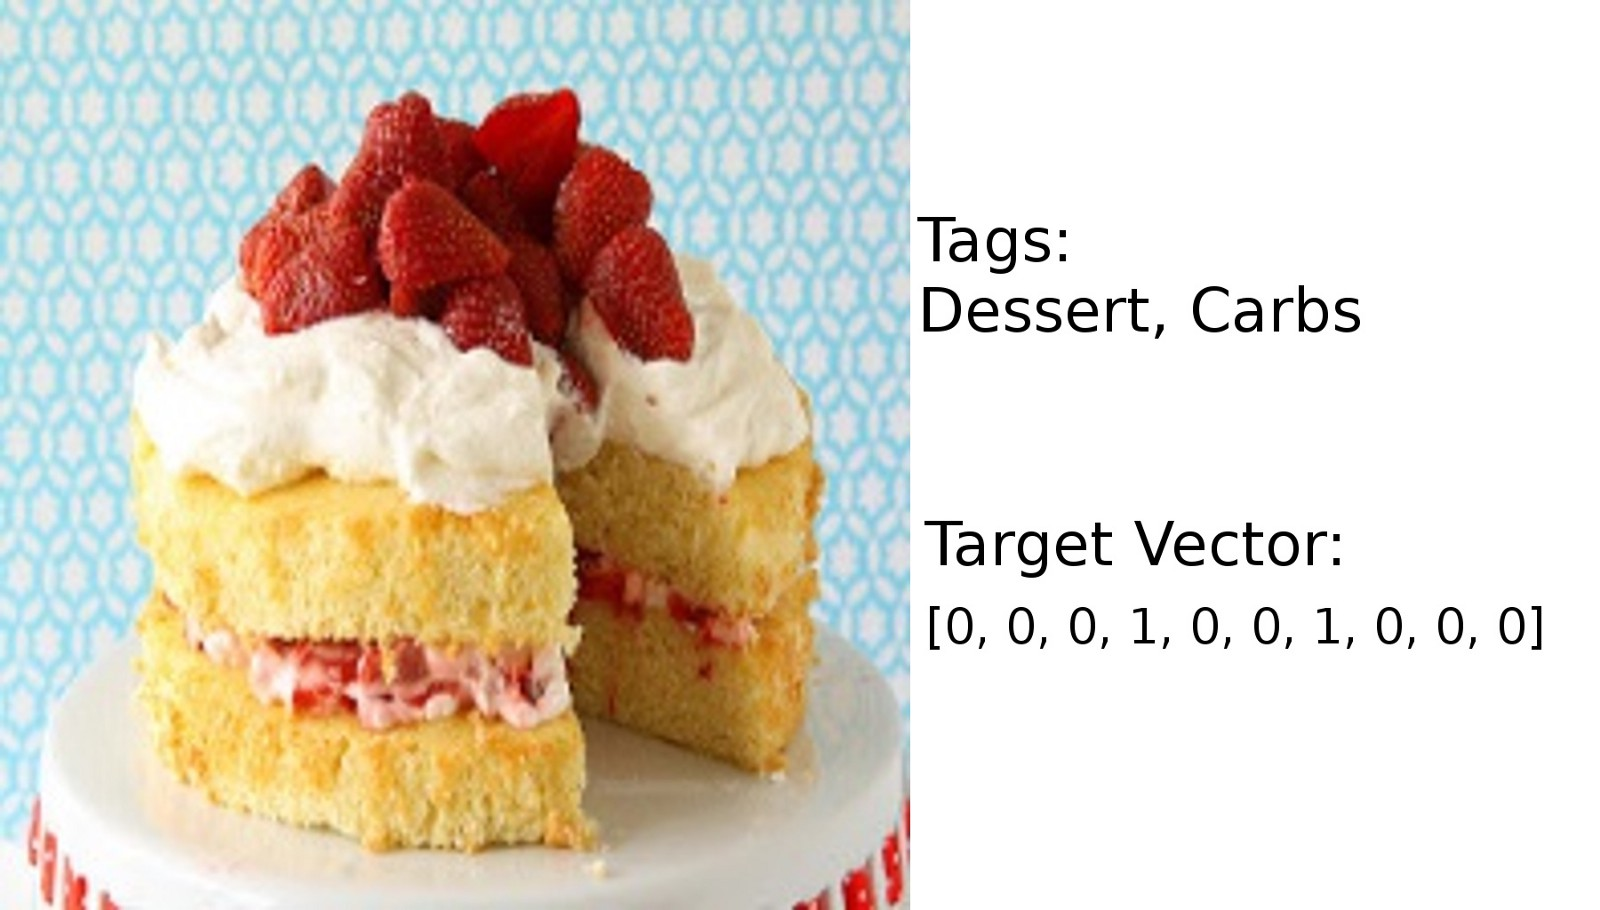 image of cake with tags generated